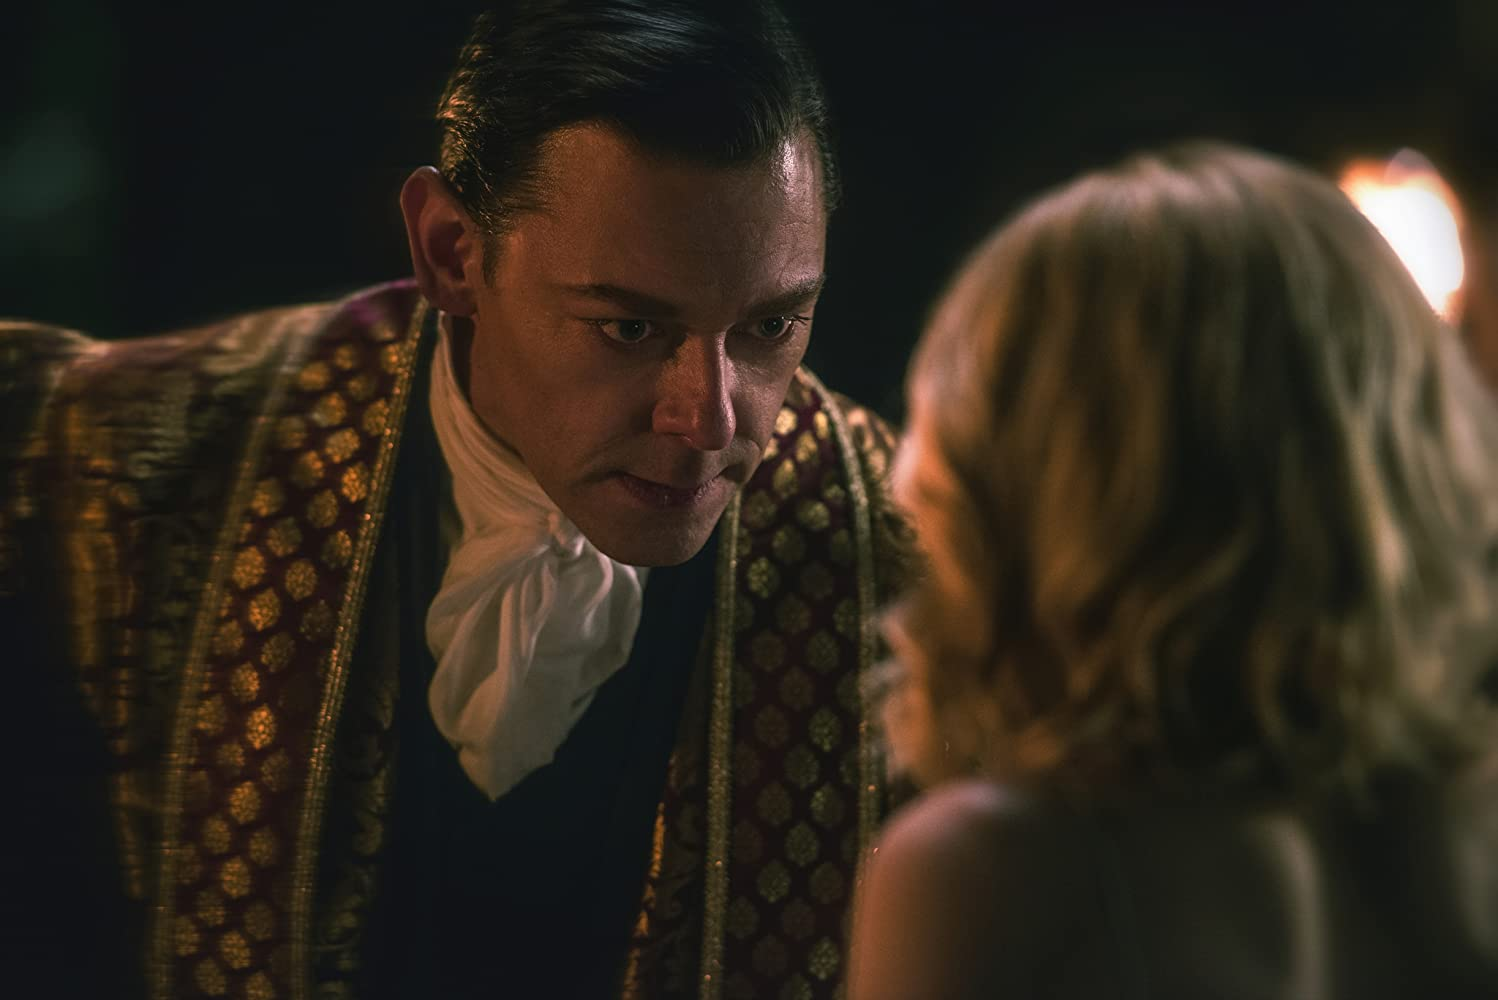 Richard Coyle and Kiernan Shipka in Chilling Adventures of Sabrina (2018)